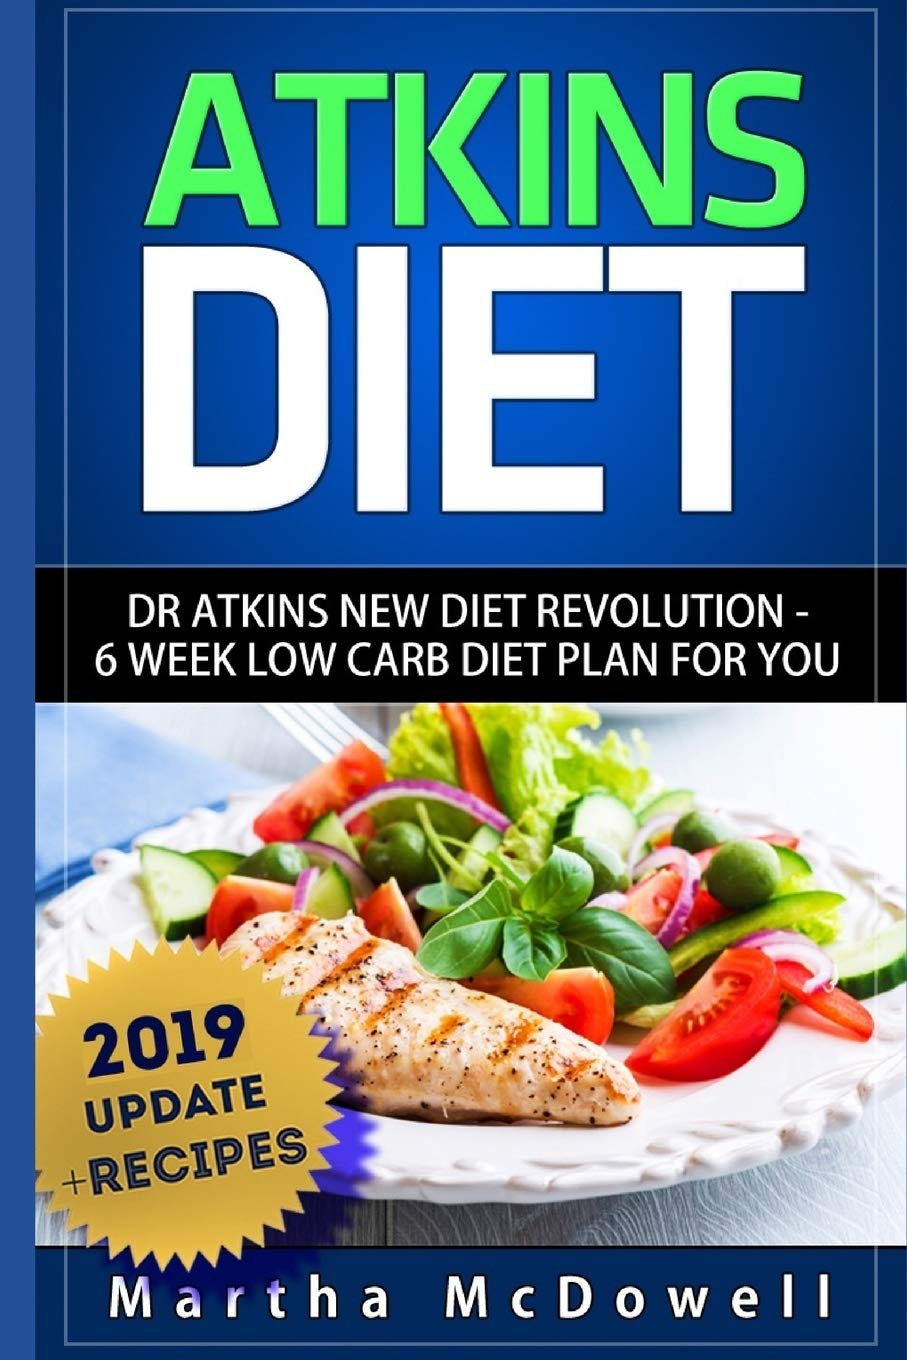 Atkins Diet: Dr. Atkins New Diet Revolution – 6 Week Low Carb Diet Plan for You (Atkins Diet Book, Low Carb Cookbook, Atkins Diet Cookbook, High Protein Cookbook, New Atkins Diet)